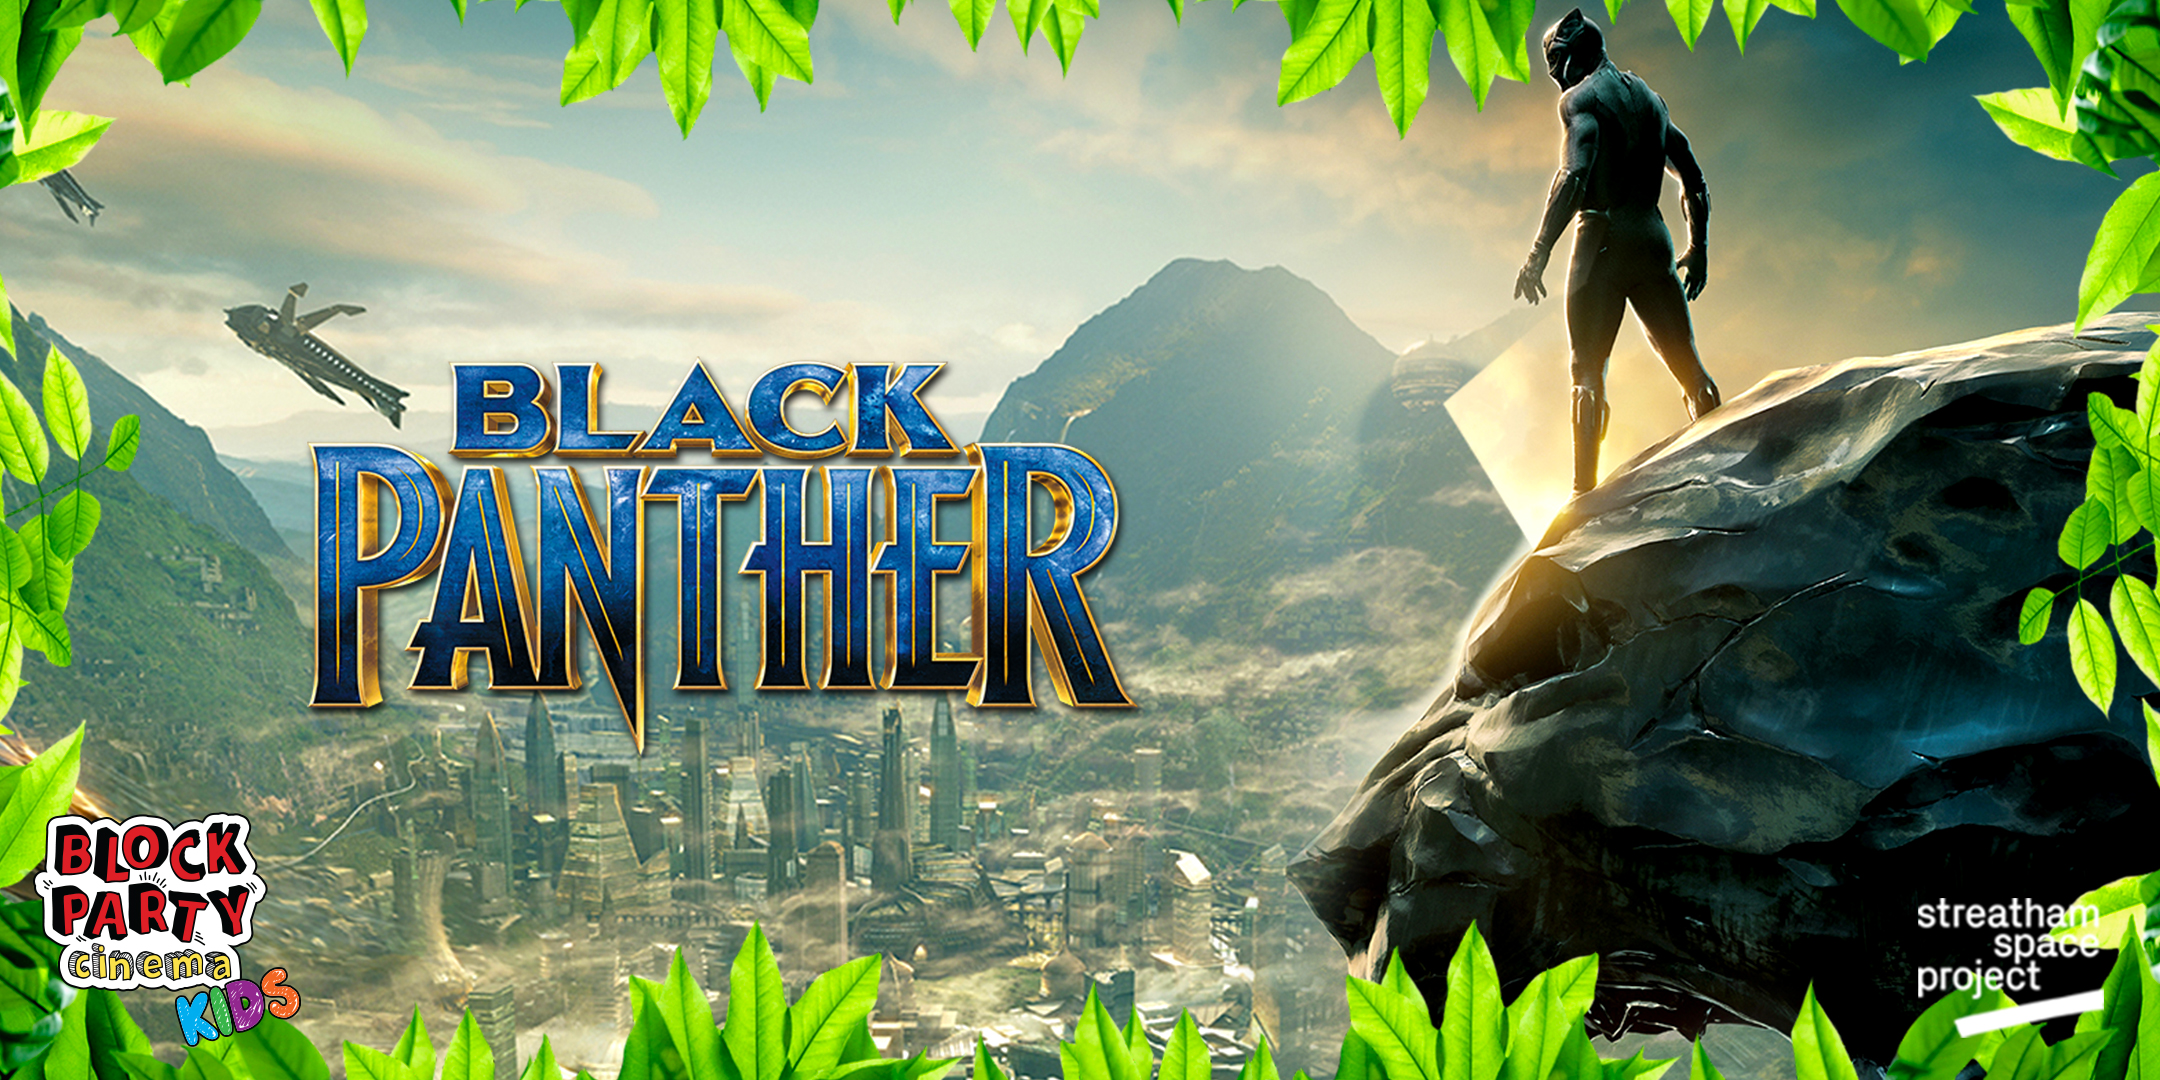 eventbrite-bpc-black-panther.jpg